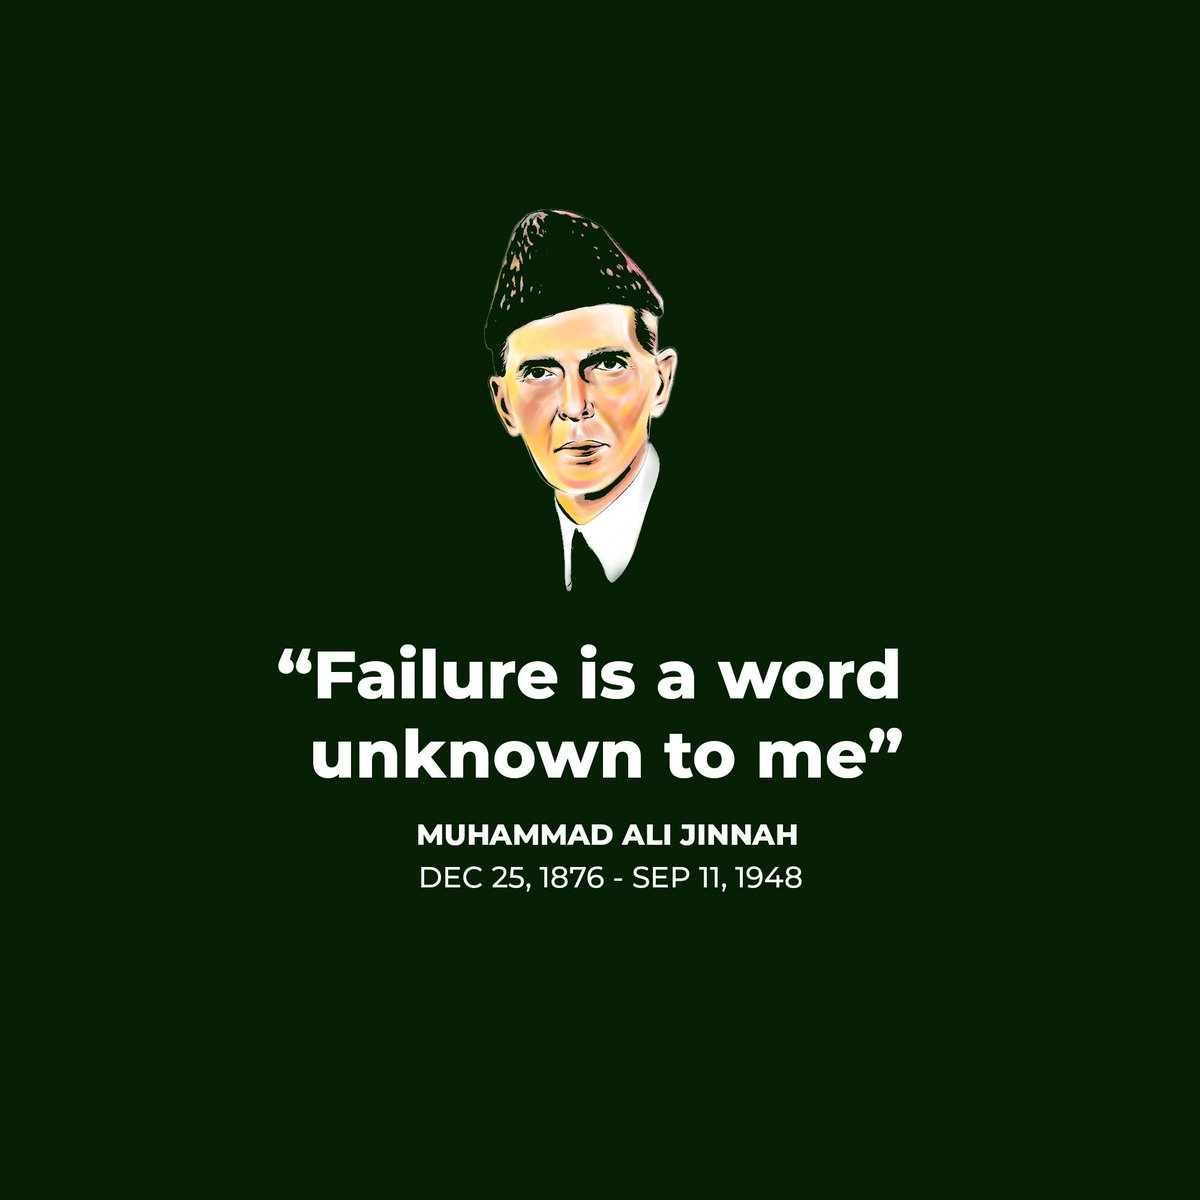 Today we observe the 71st death anniversary of Jinnah. Pakistanis, specially the youth should learn a lot from the wisdom of our great leader. #QuaideAzam #WednesdayThoughts